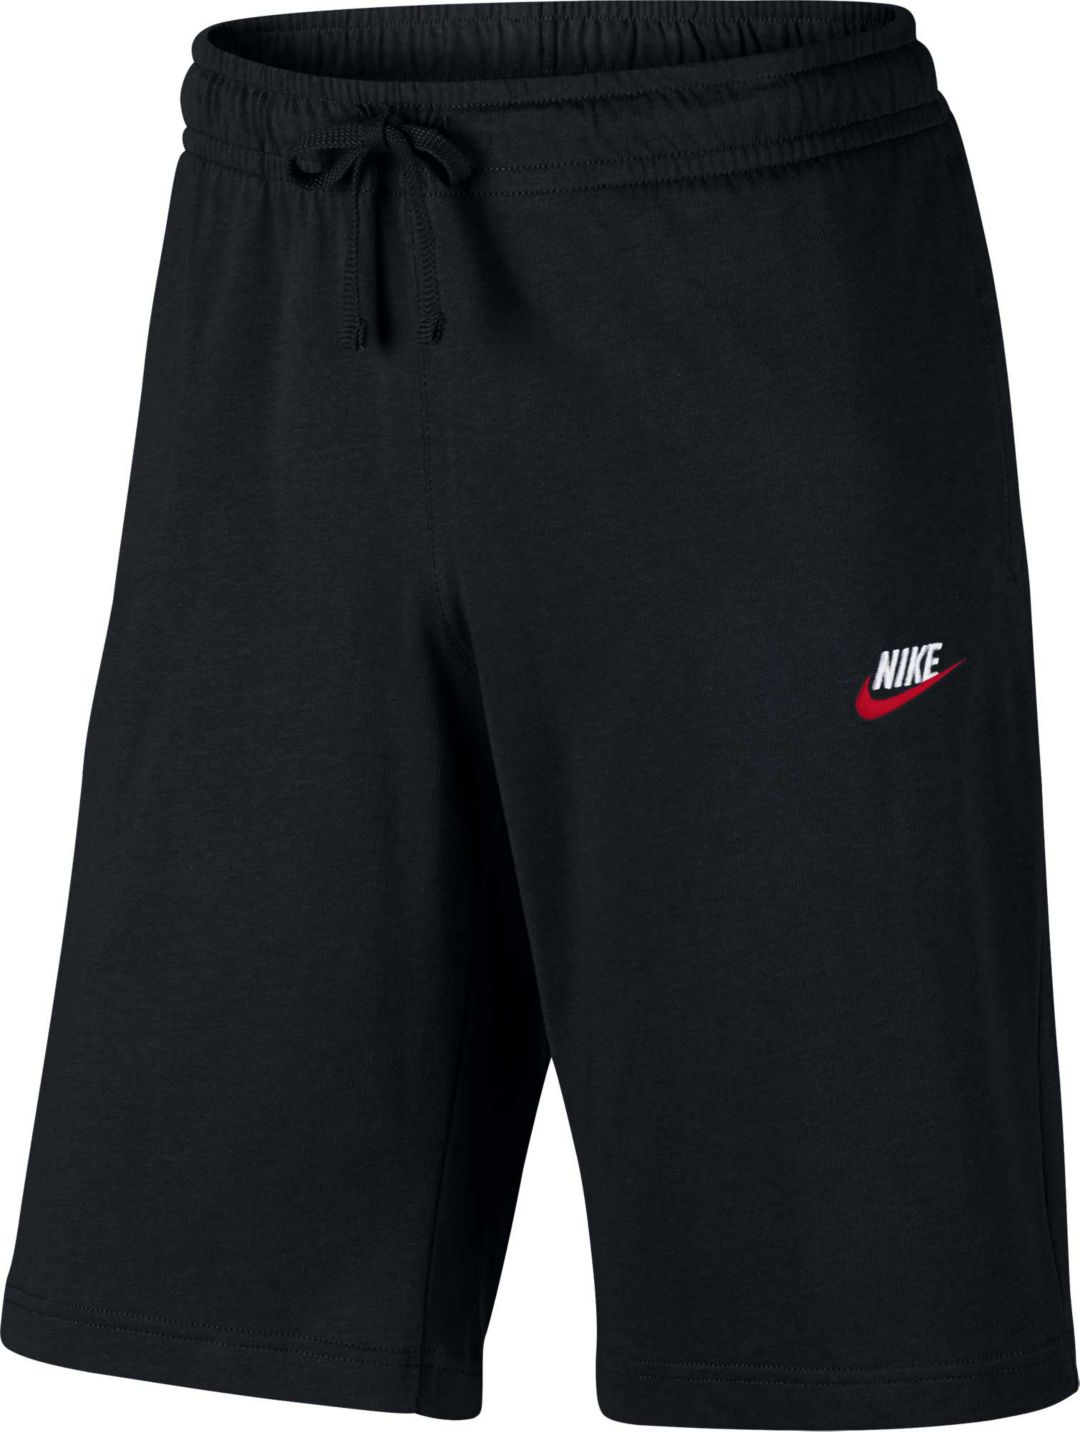 nike shorts zipper side pocket